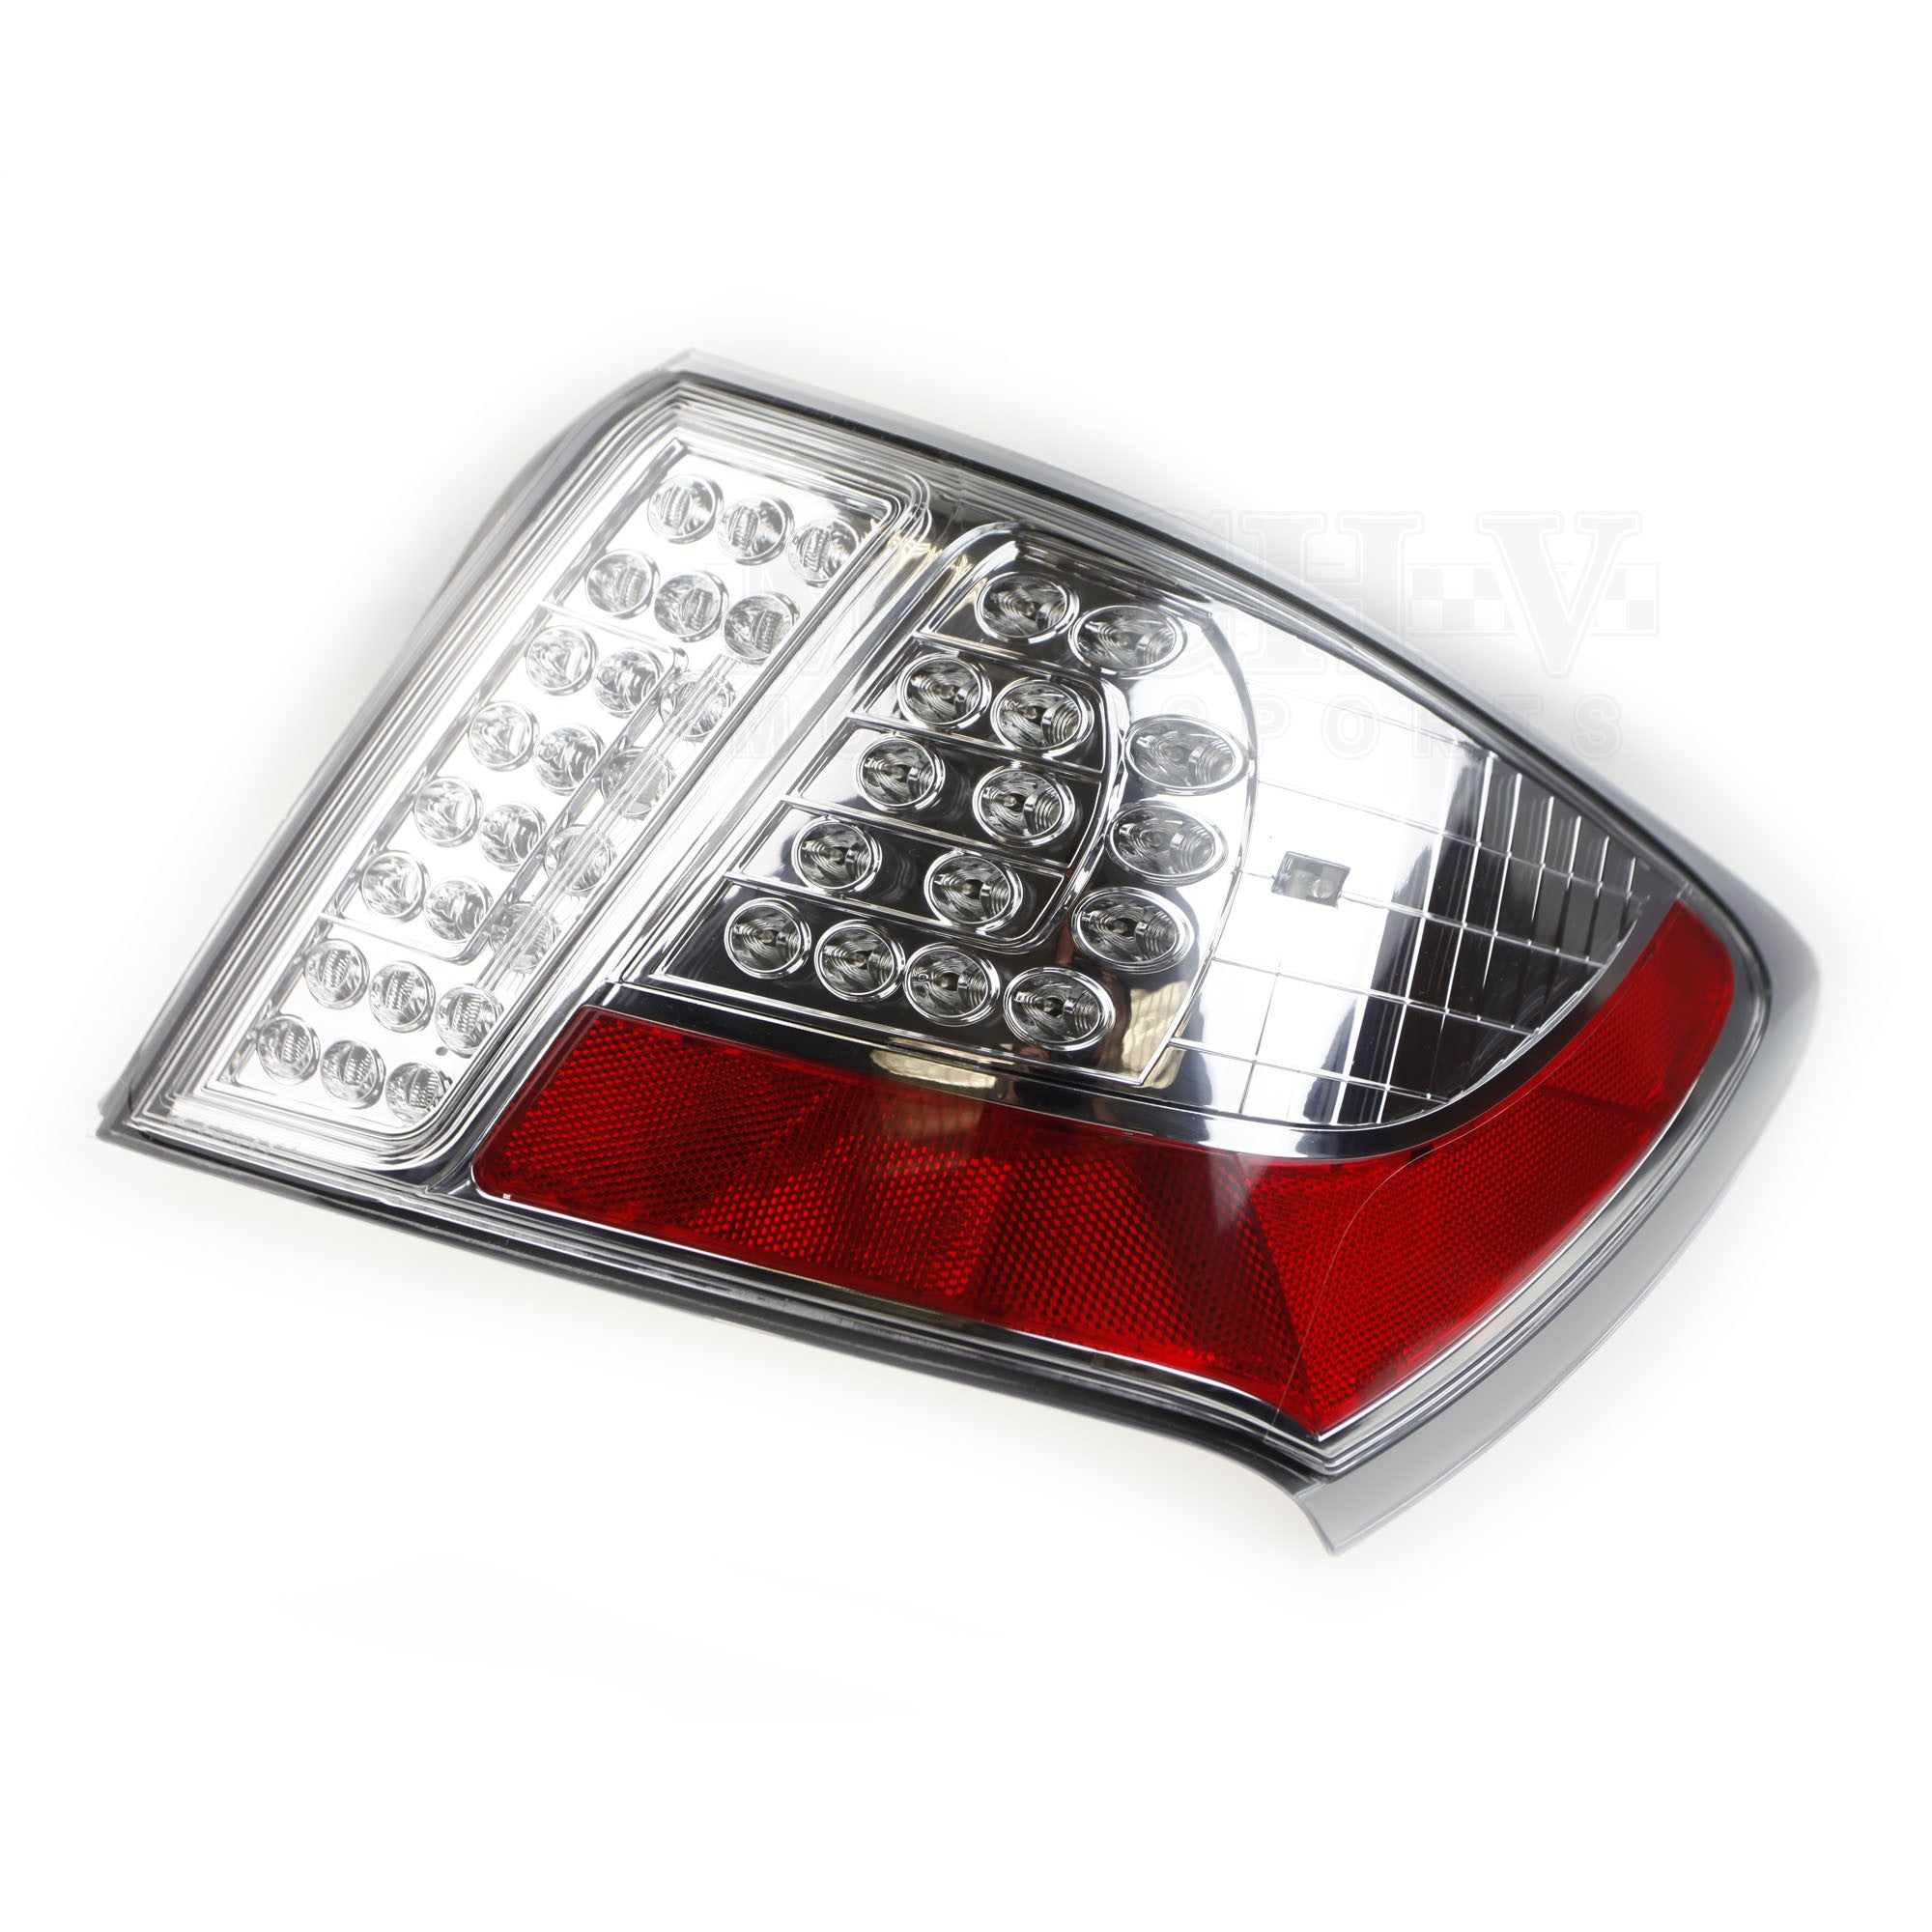 Valenti Jewel Led Tail Lamps 2008 2014 Subaru Wrx Sti Sedan 2010 Light Swapledwiringjpg